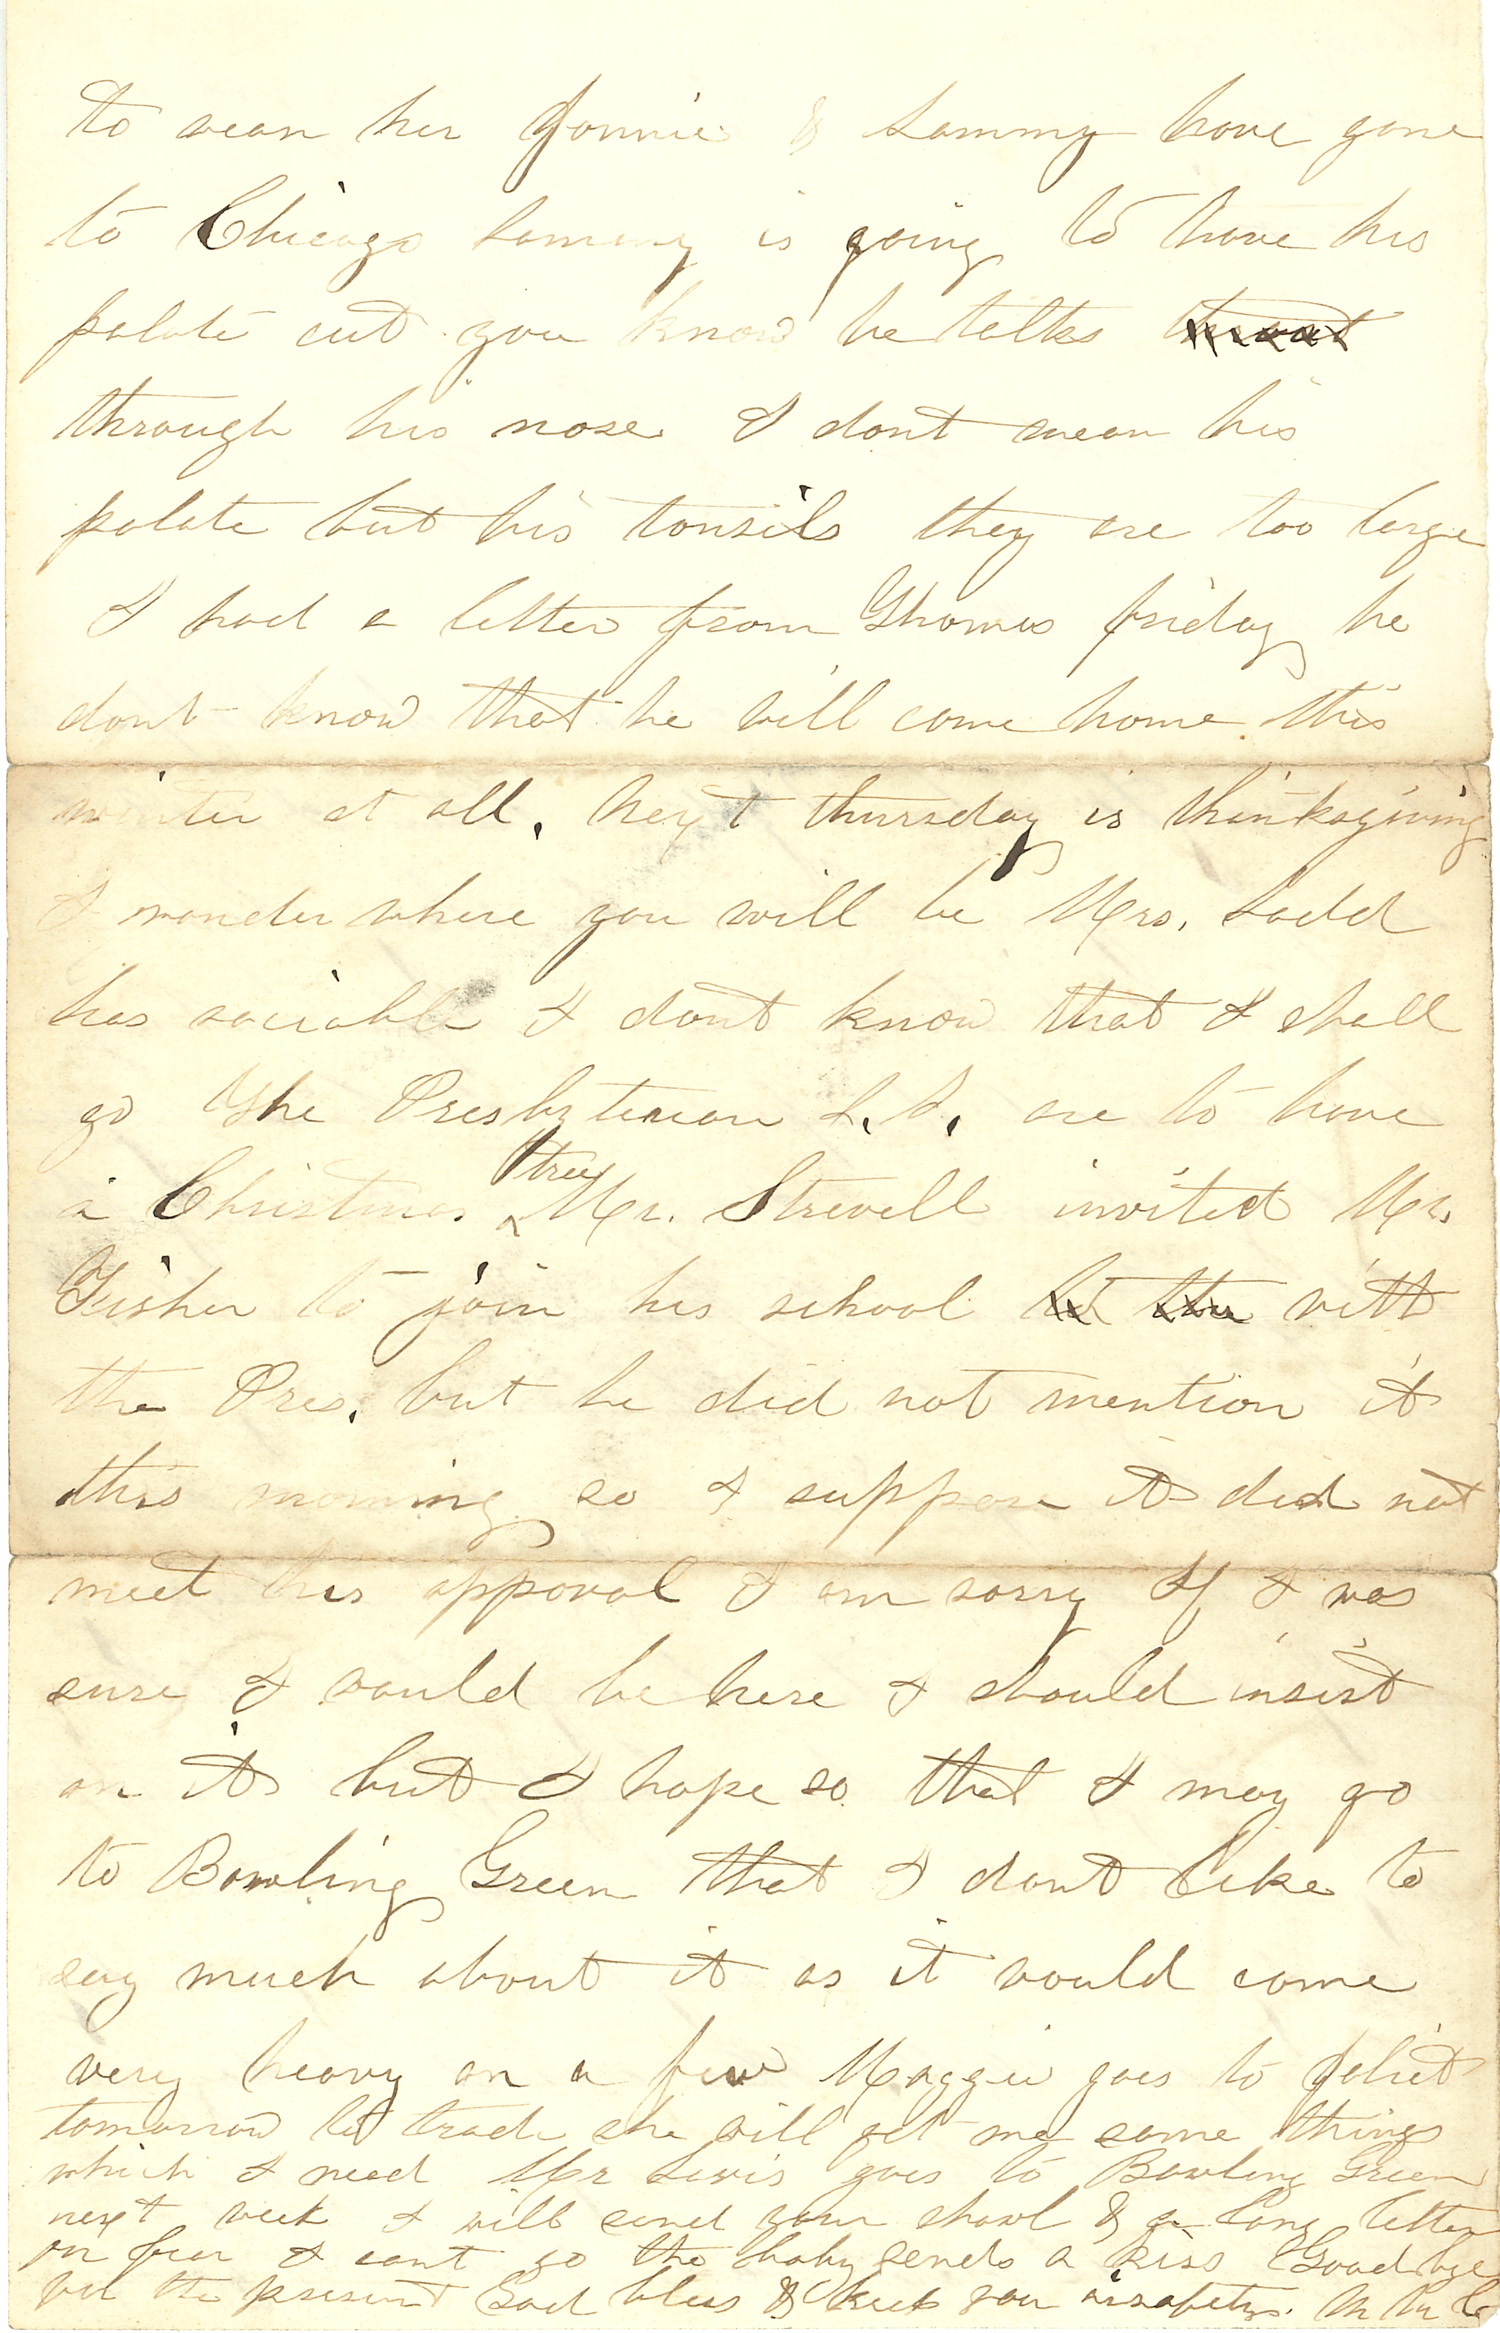 Joseph Culver Letter, November 24, 1862, Page 2